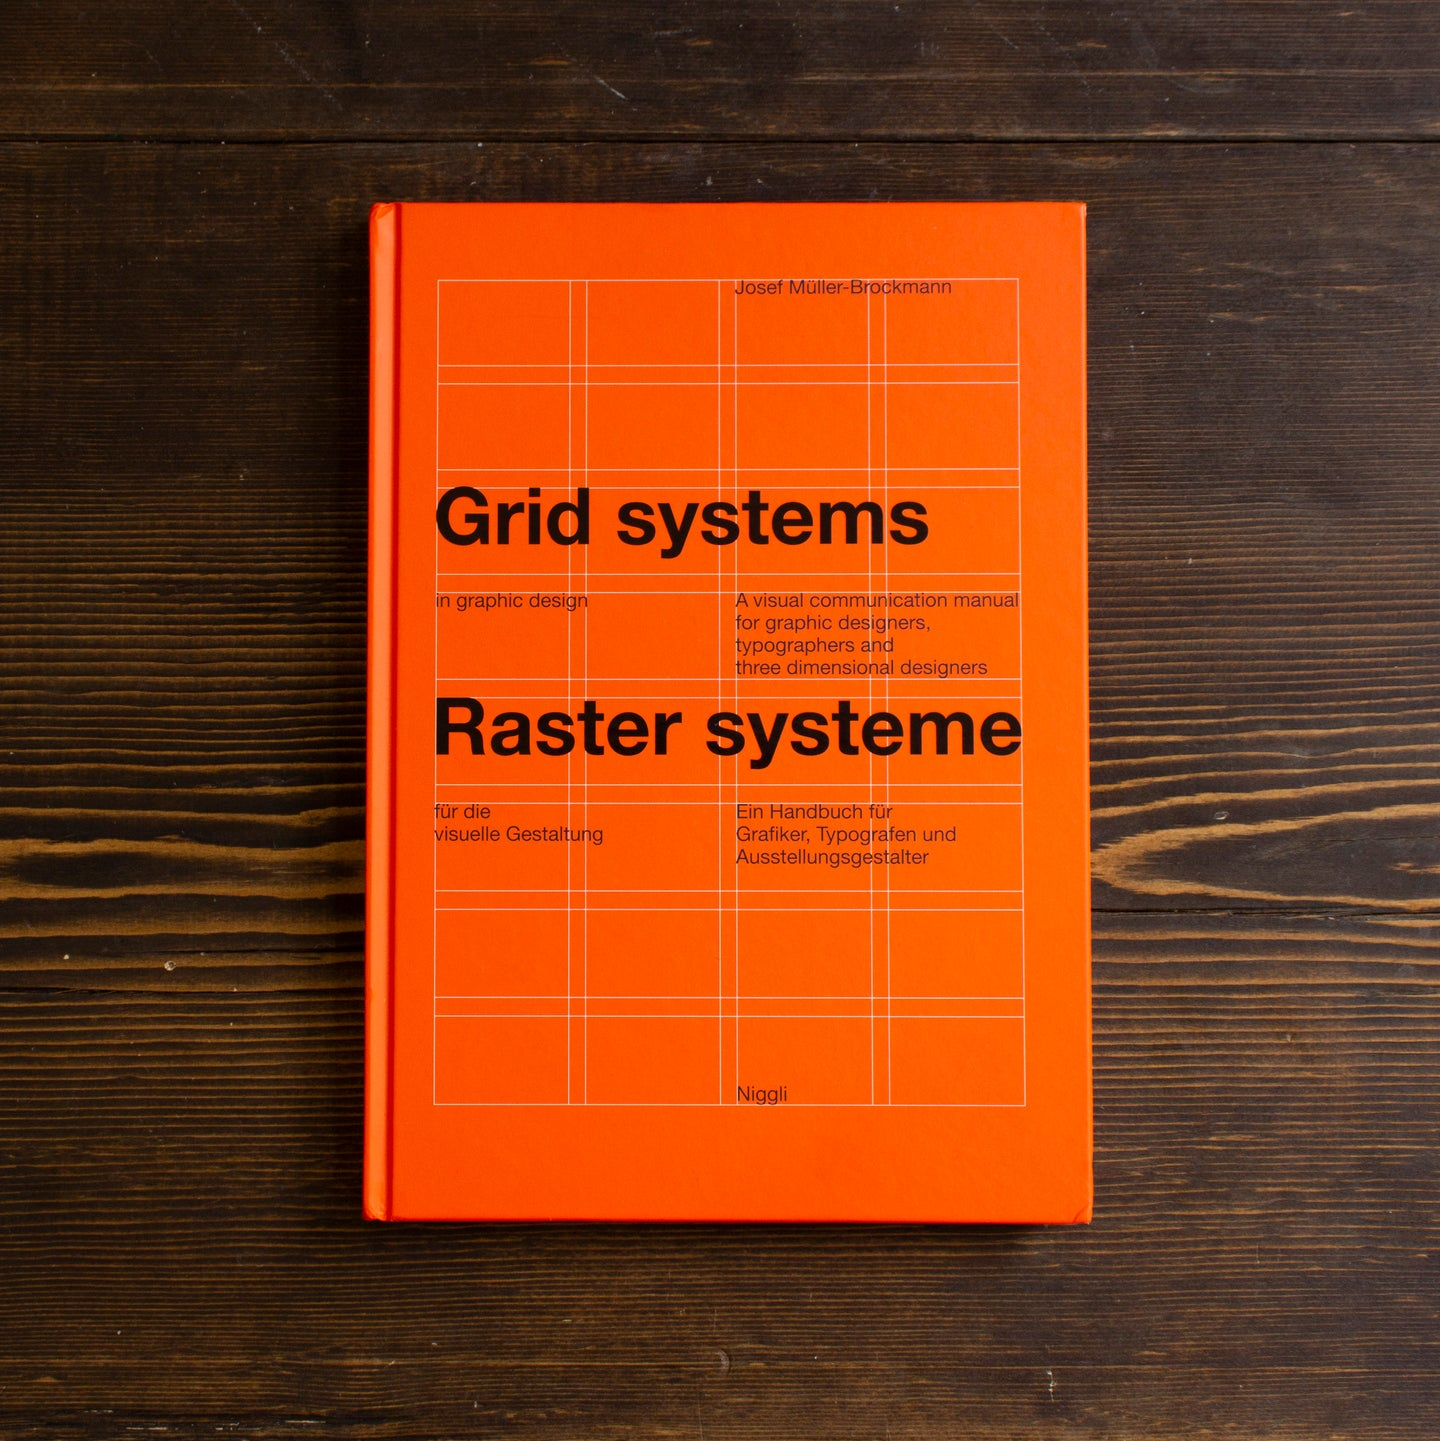 GRID SYSTEMS IN GRAPHIC DESIGN - JOSEF MÜLLER-BROCKMANN